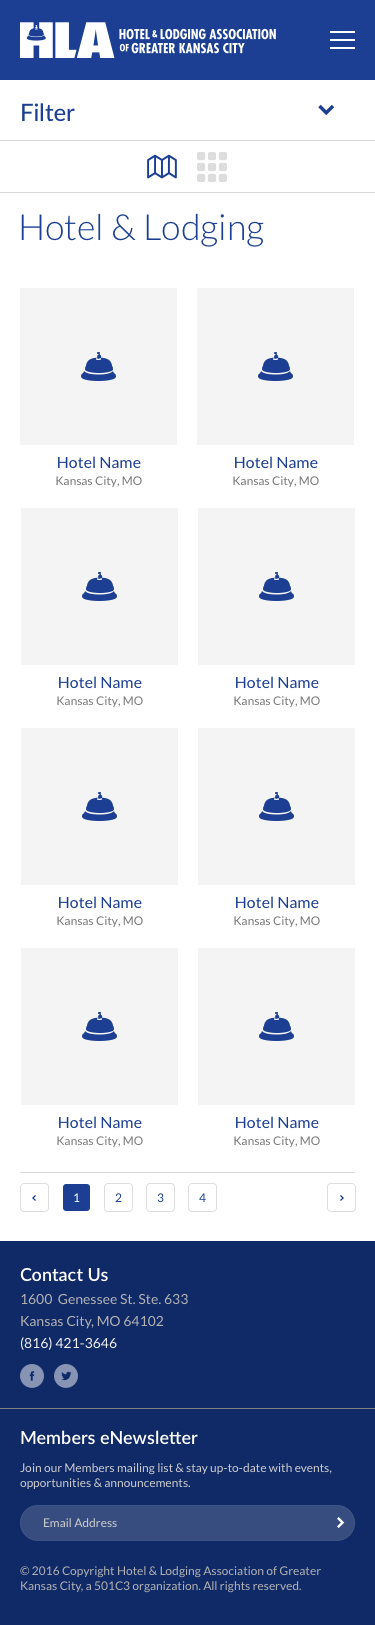 The Hotel & Lodging Association of Greater Kansas - Hotel & Lodging Search, Grid View, Mobile